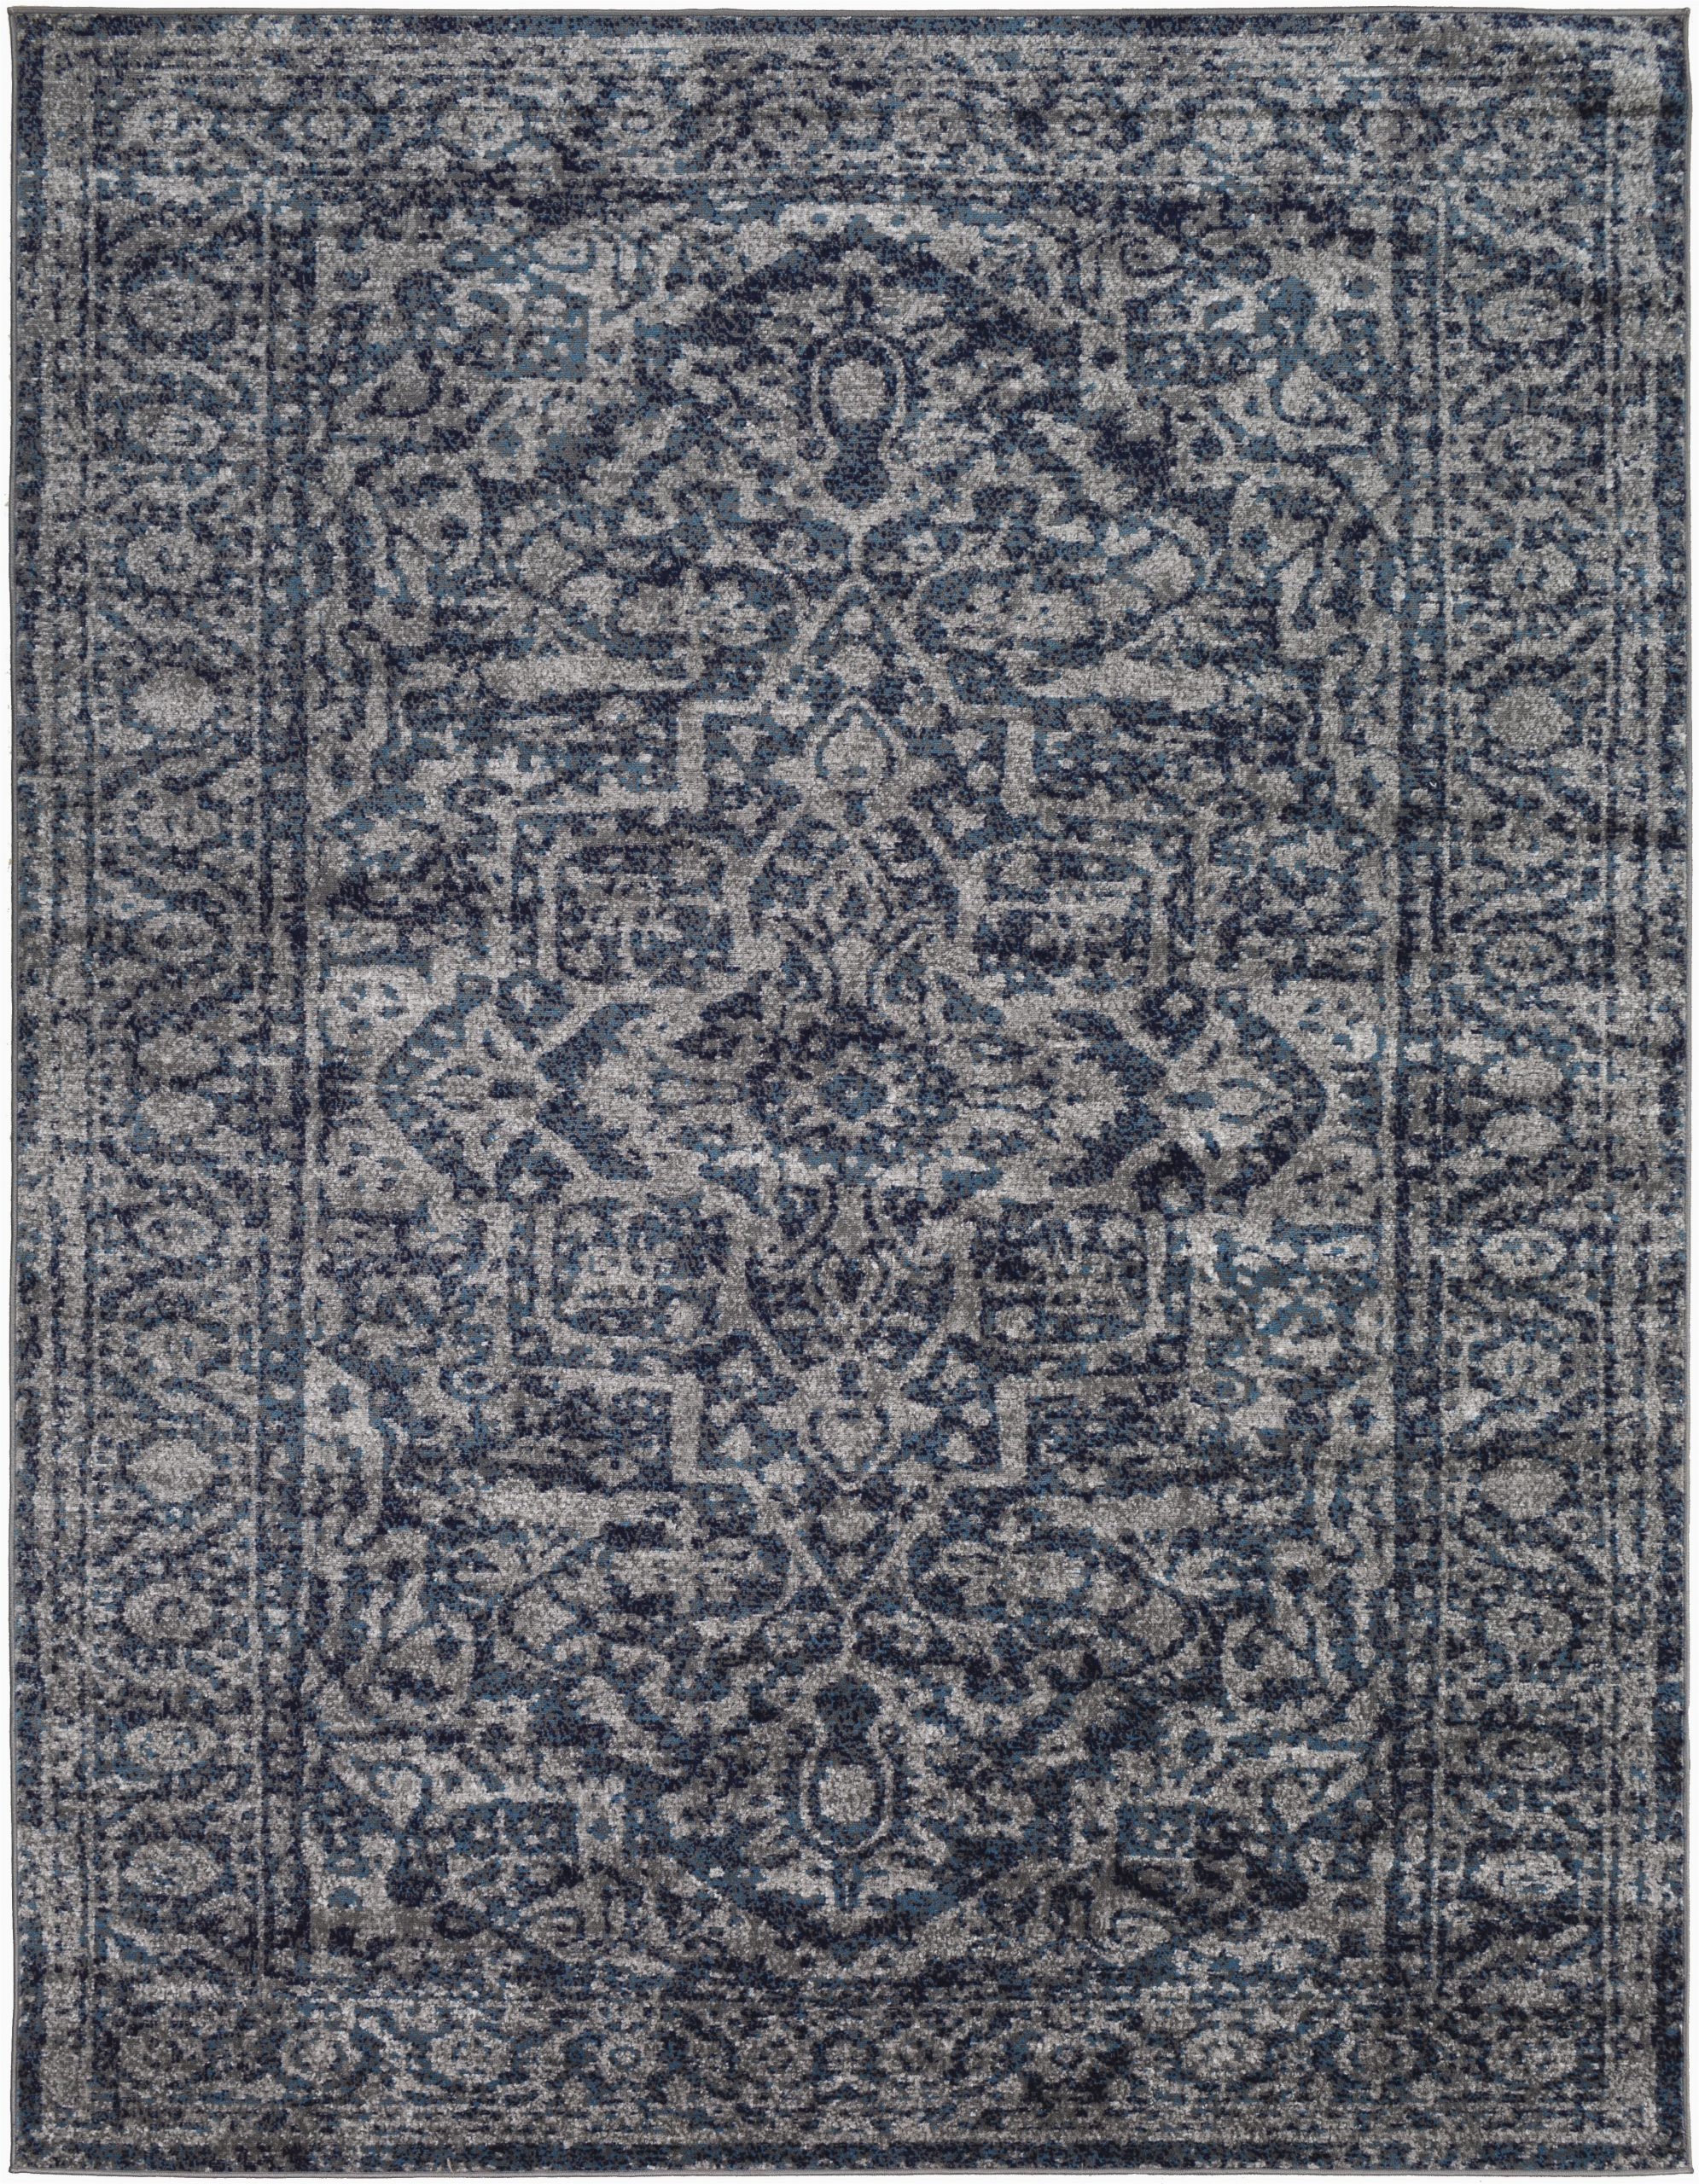 ranck distressed navybaby blue area rug bgls1216 piid=